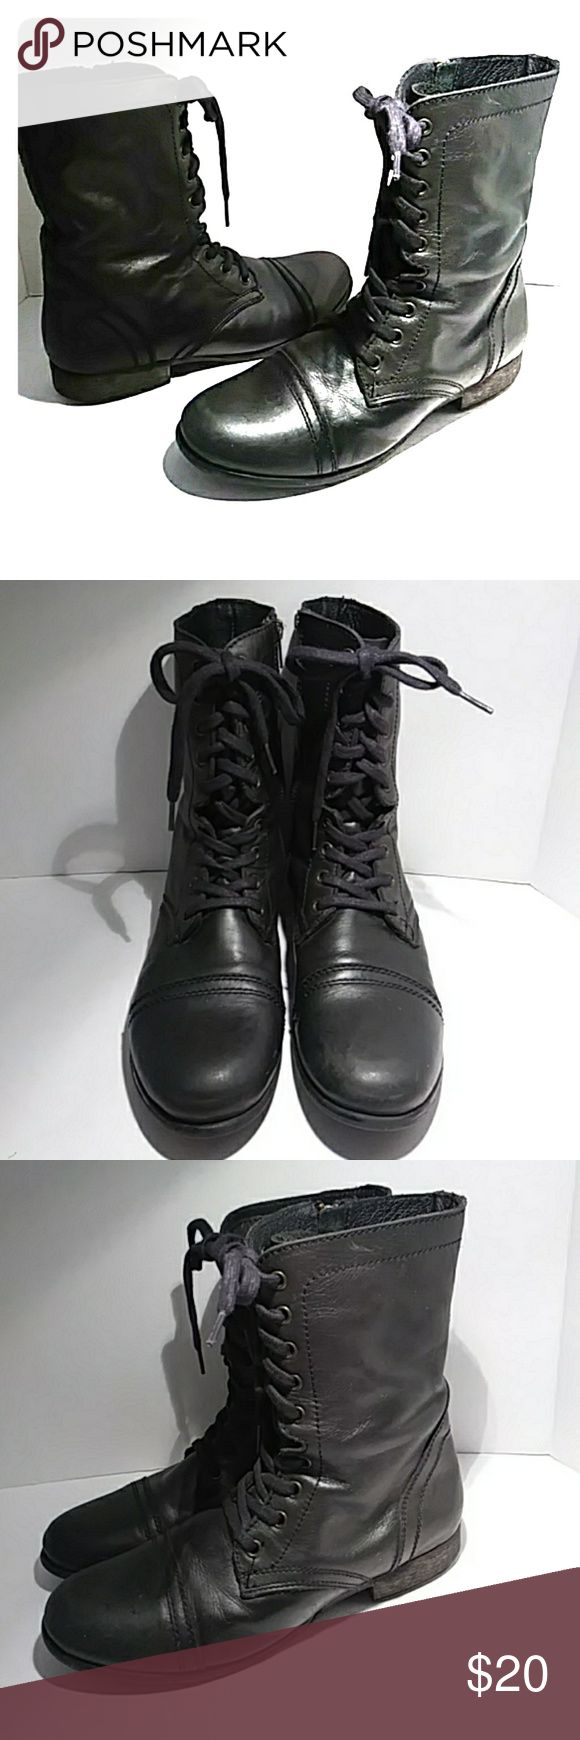 Steve Madden lace up boots Nice dark hunter green leather boots that can be worn all year round. Goes well with shorts, skirts & dressss Steve Madden Shoes Lace Up Boots